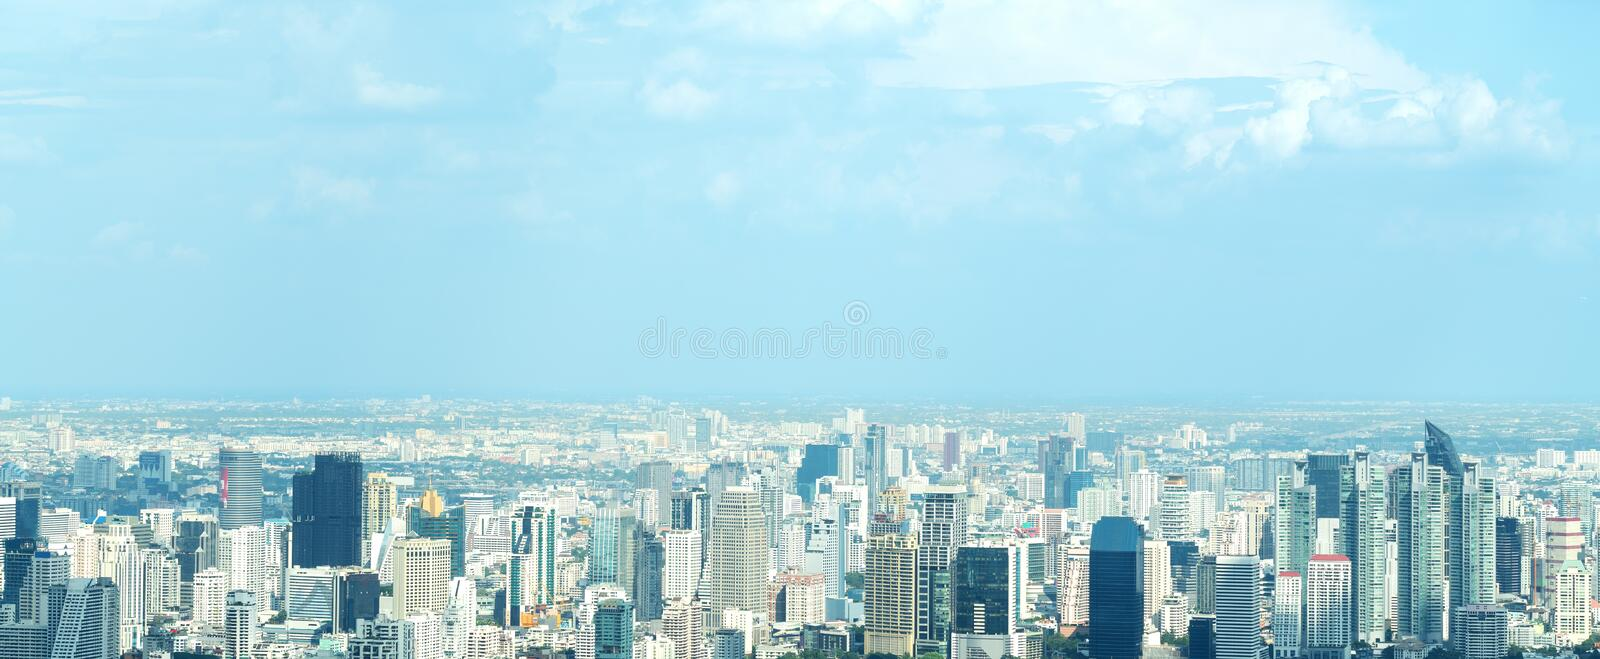 Banner of Aerial view cityscape of modern city in Bangkok. Urban landscape of Center business of thailand in Panoramic view. City royalty free stock image